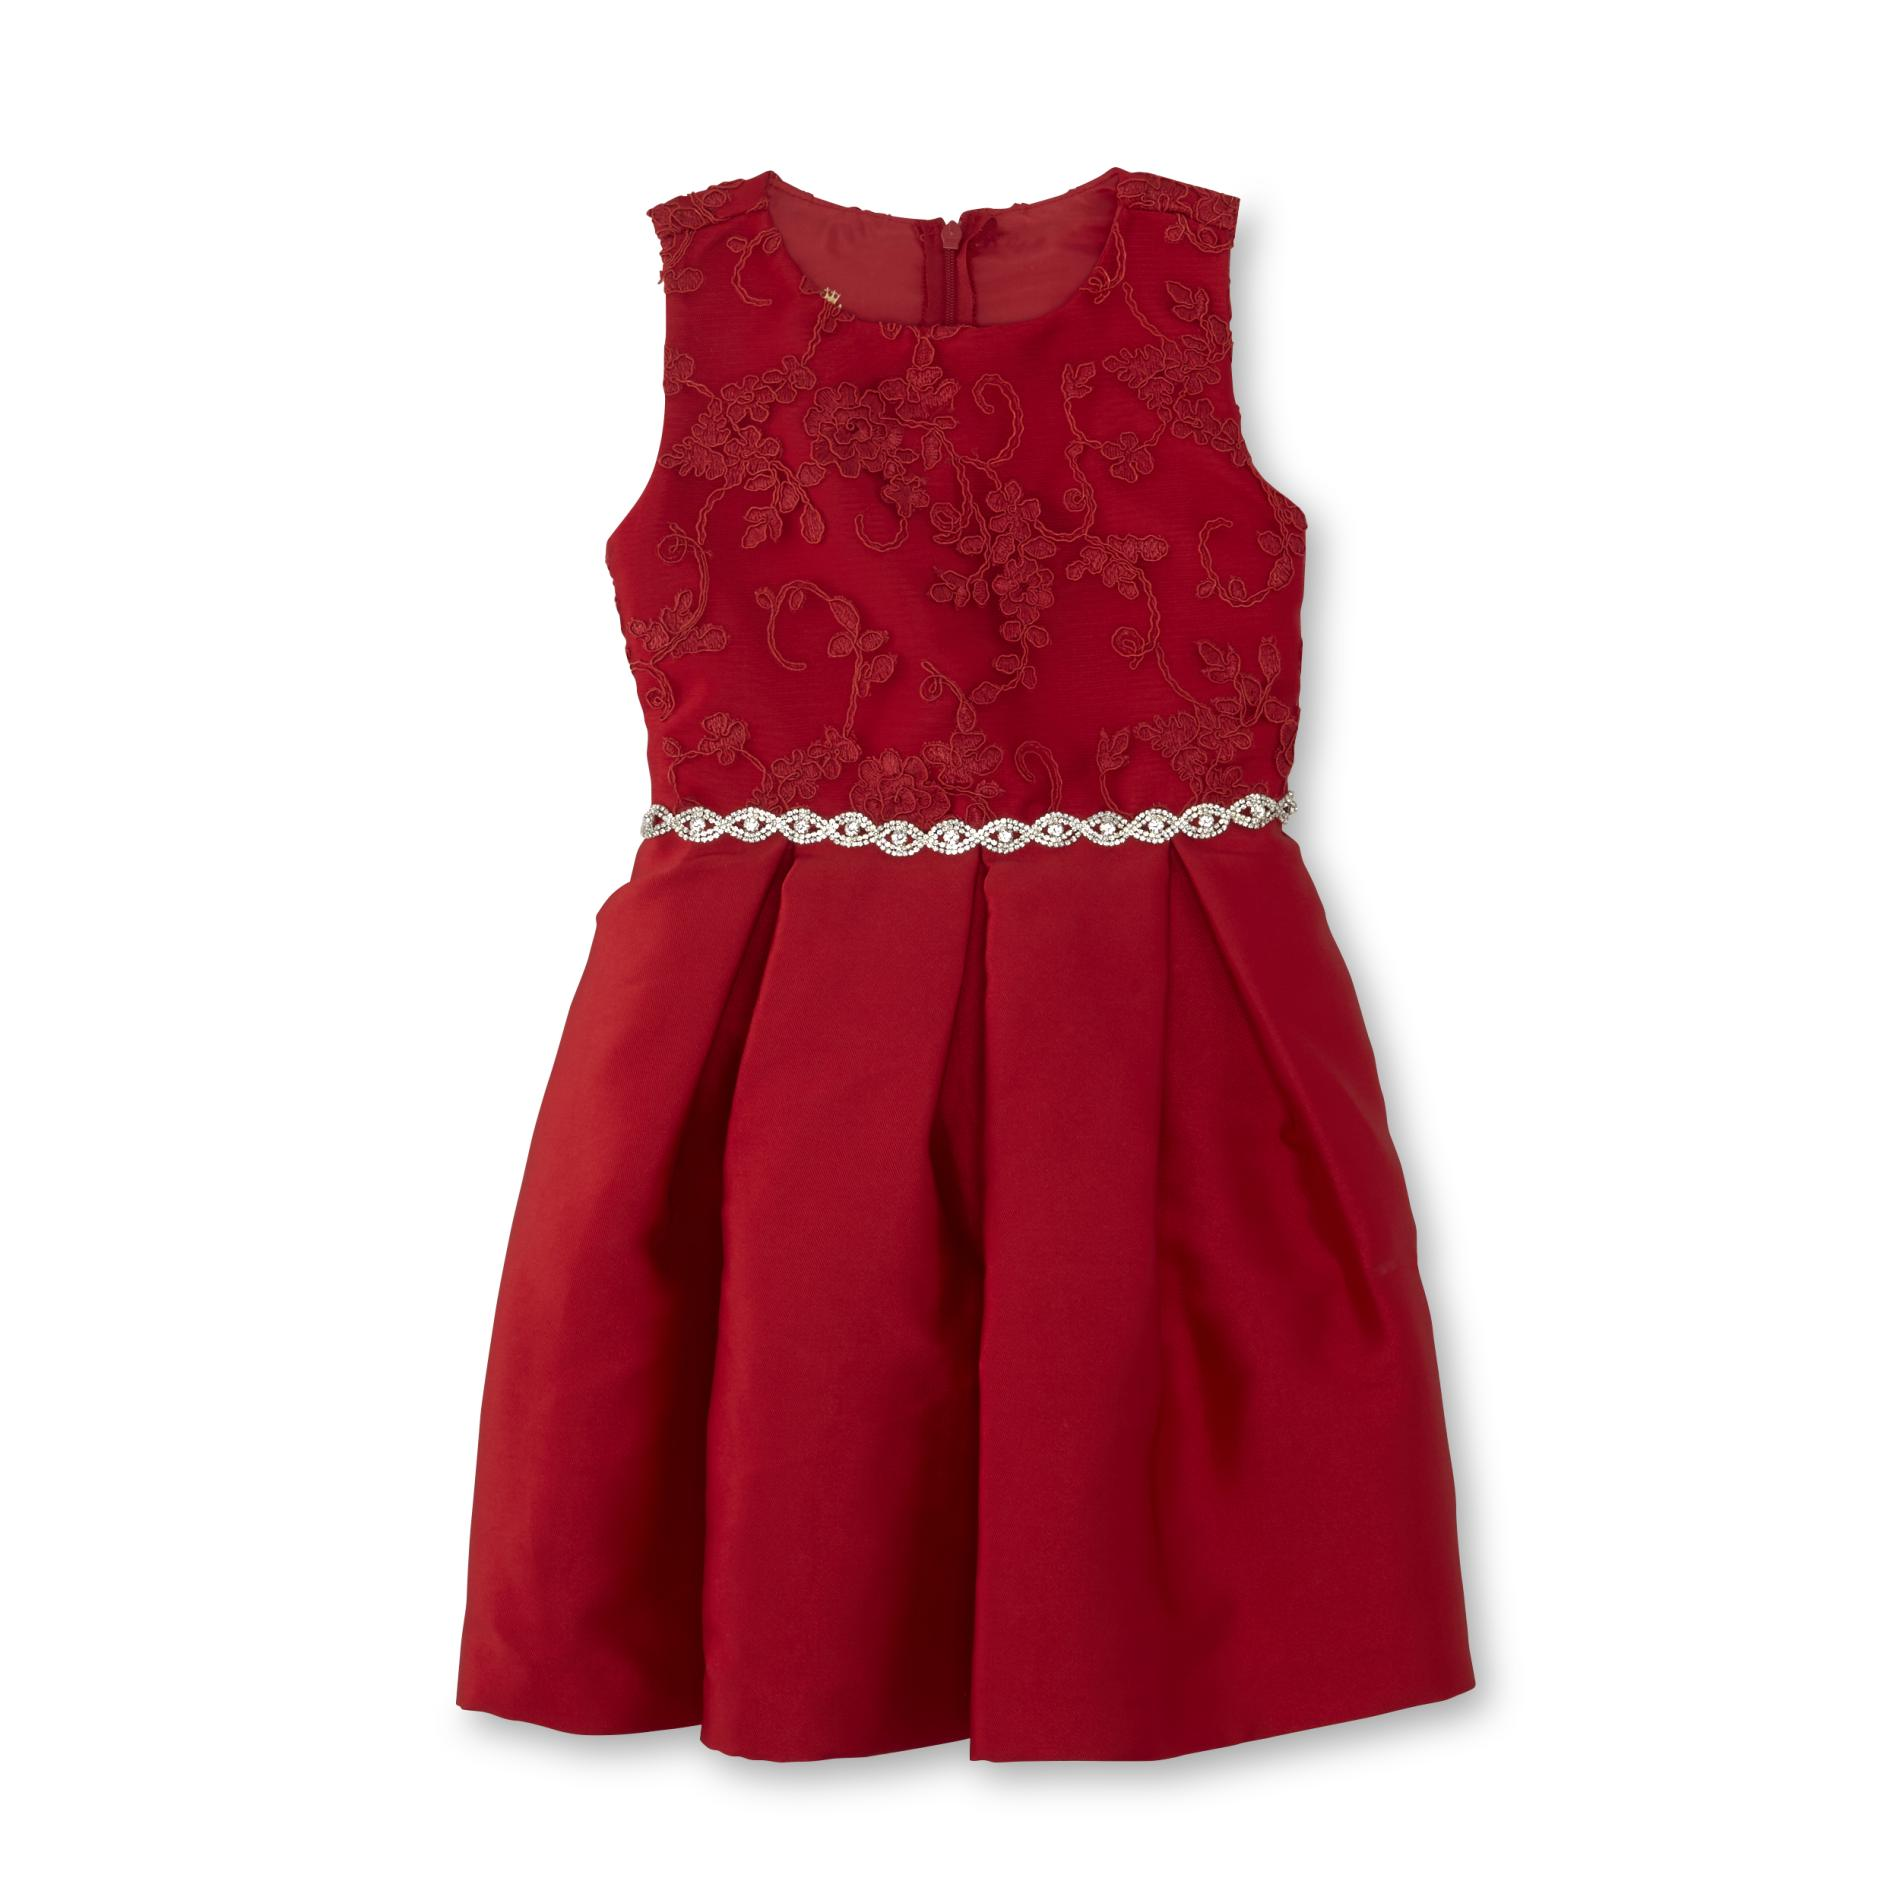 Special Editions Girls' Embellished Occasion Dress, Size: 4, Red im test